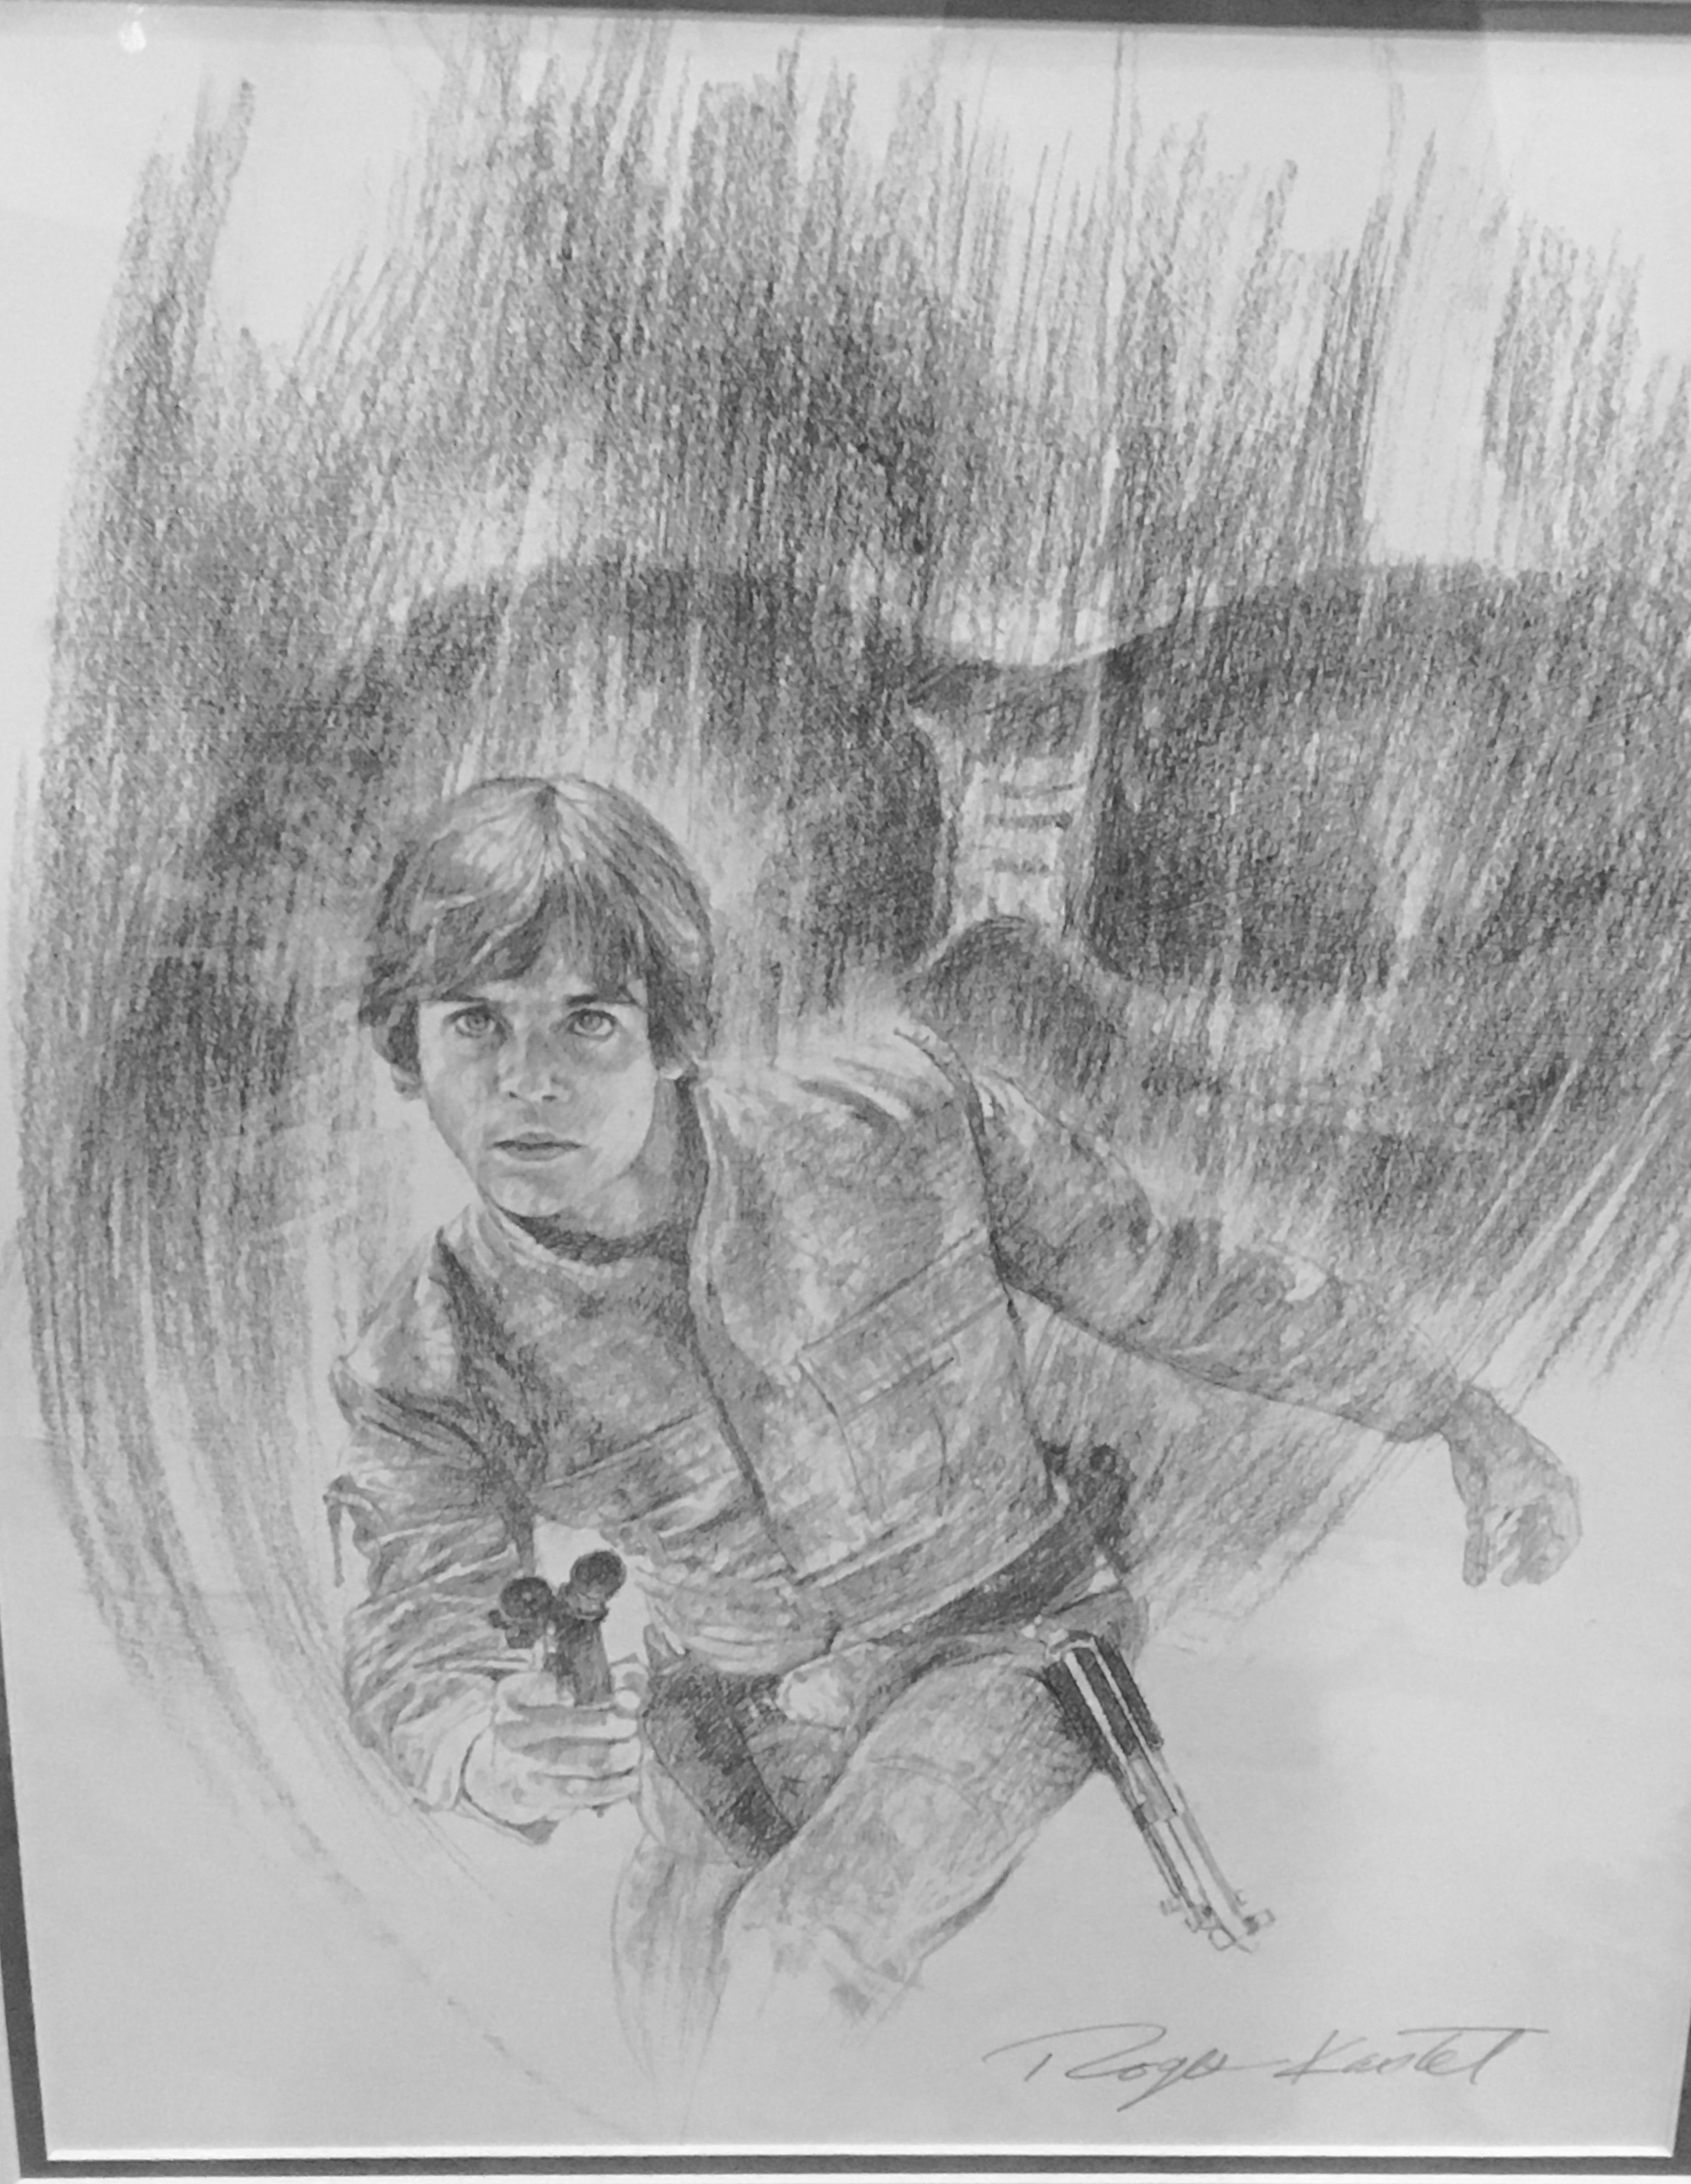 An original graphite by The Empire Strikes Back movie poster artist Roger Kastel